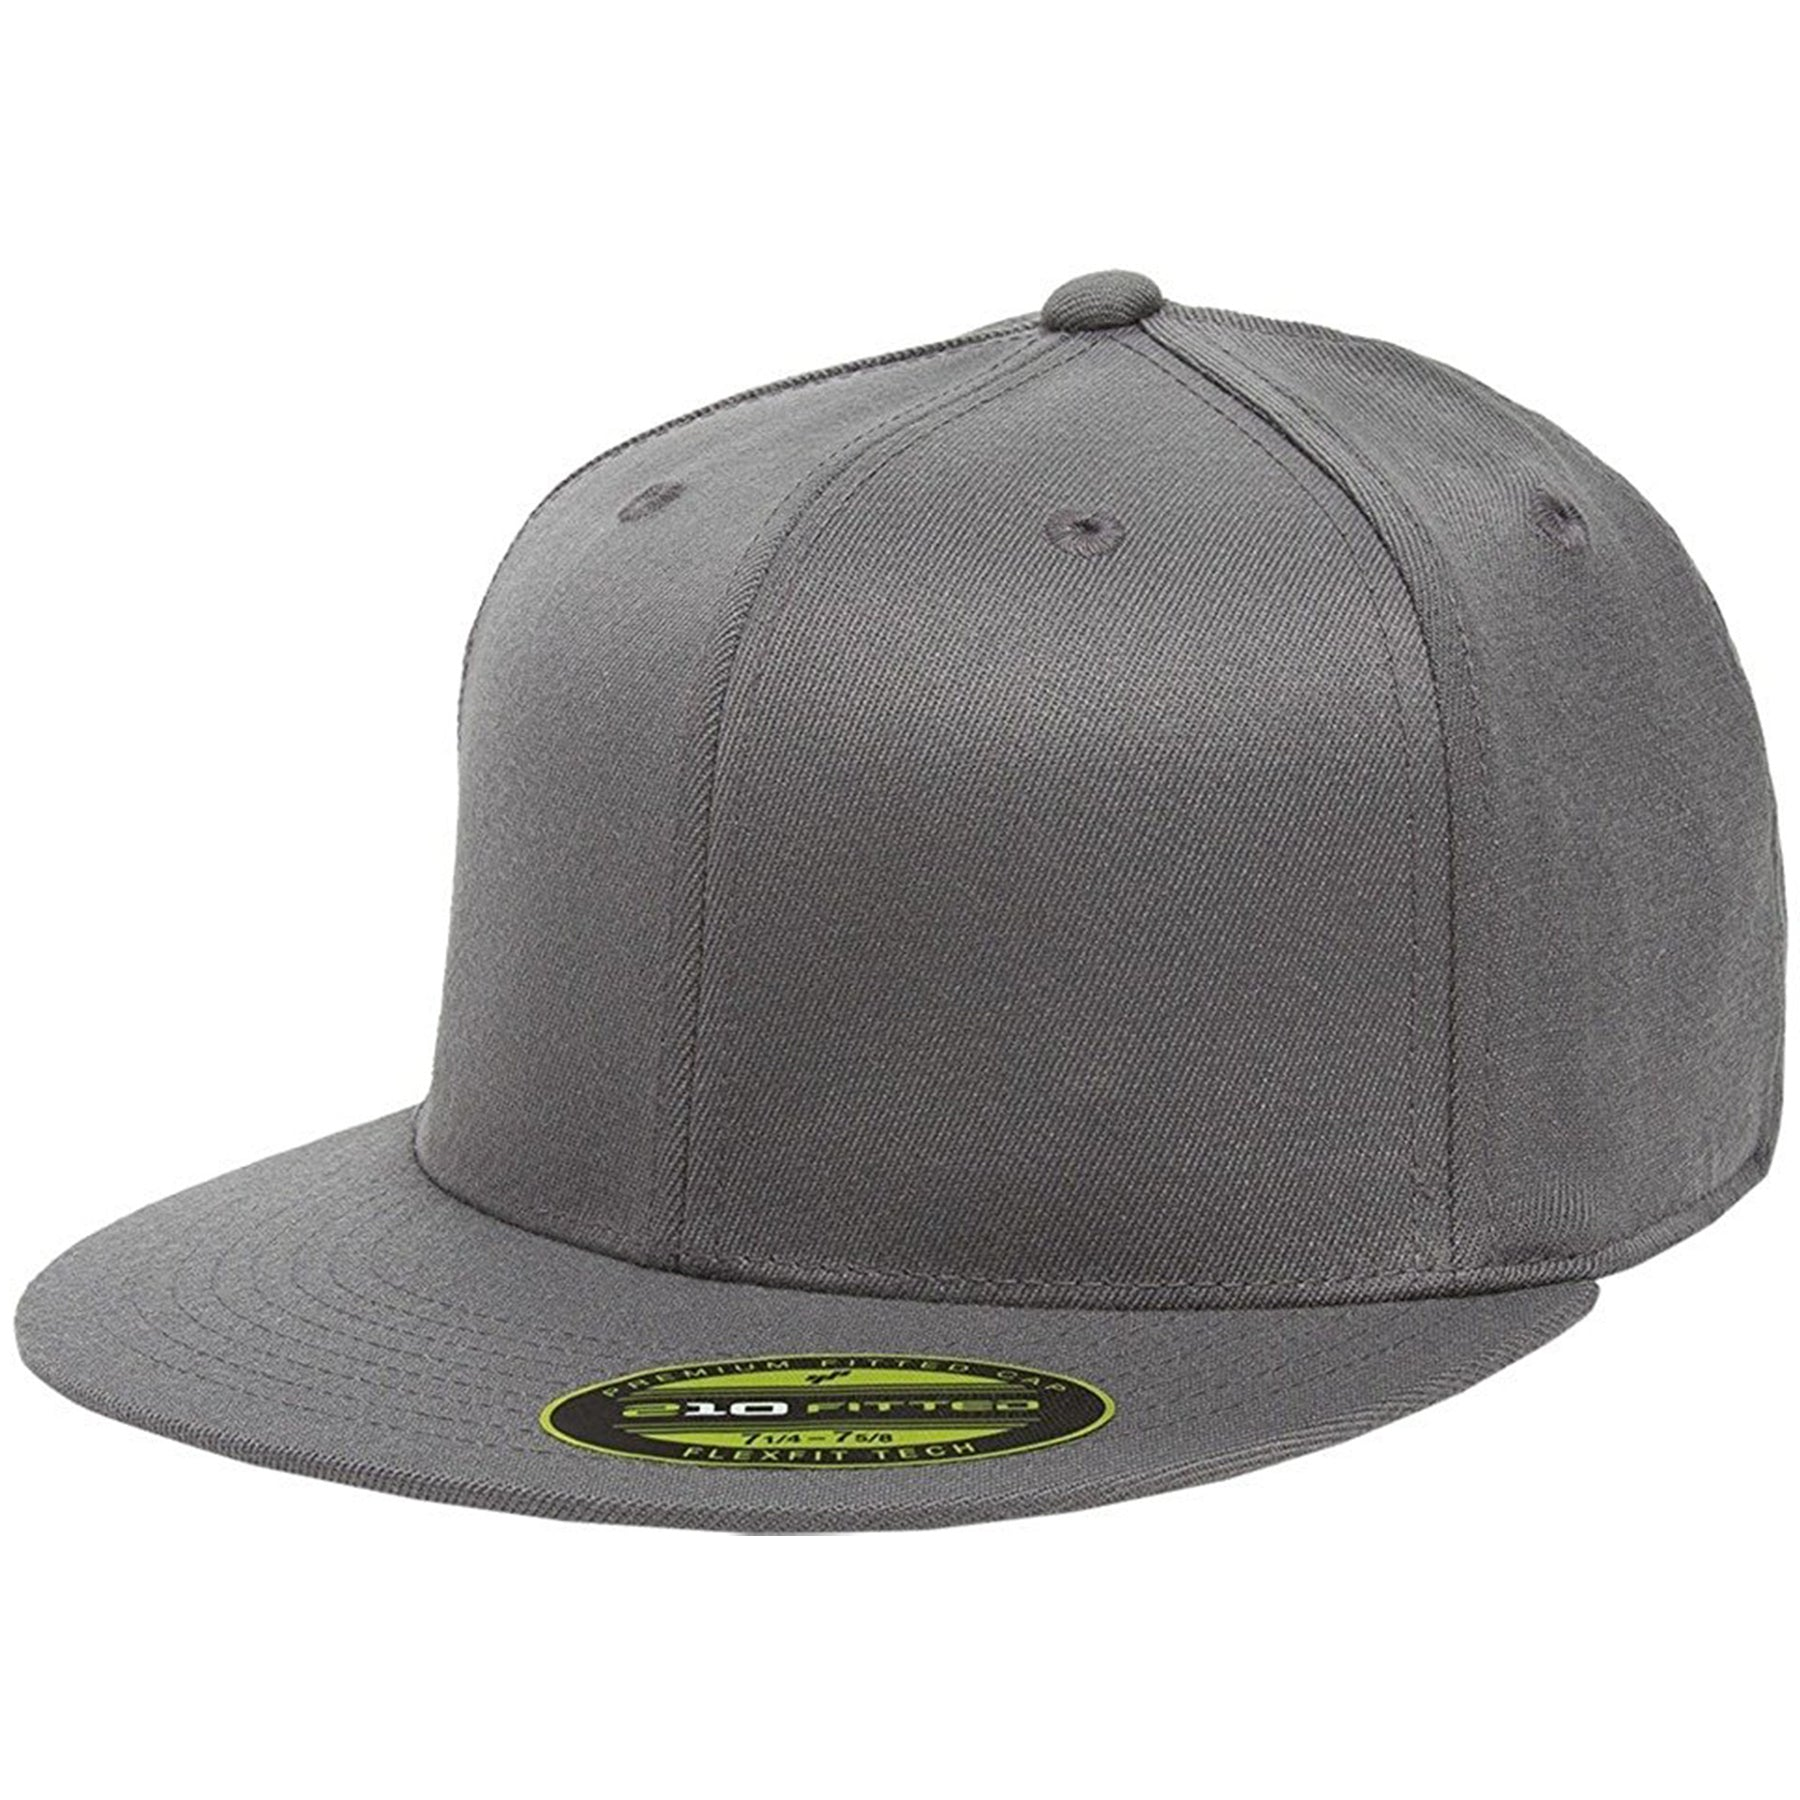 539fe47db7e09 the dark gray flexfit flat brim stretch fit elastic fit fitted hat has a  structured crown